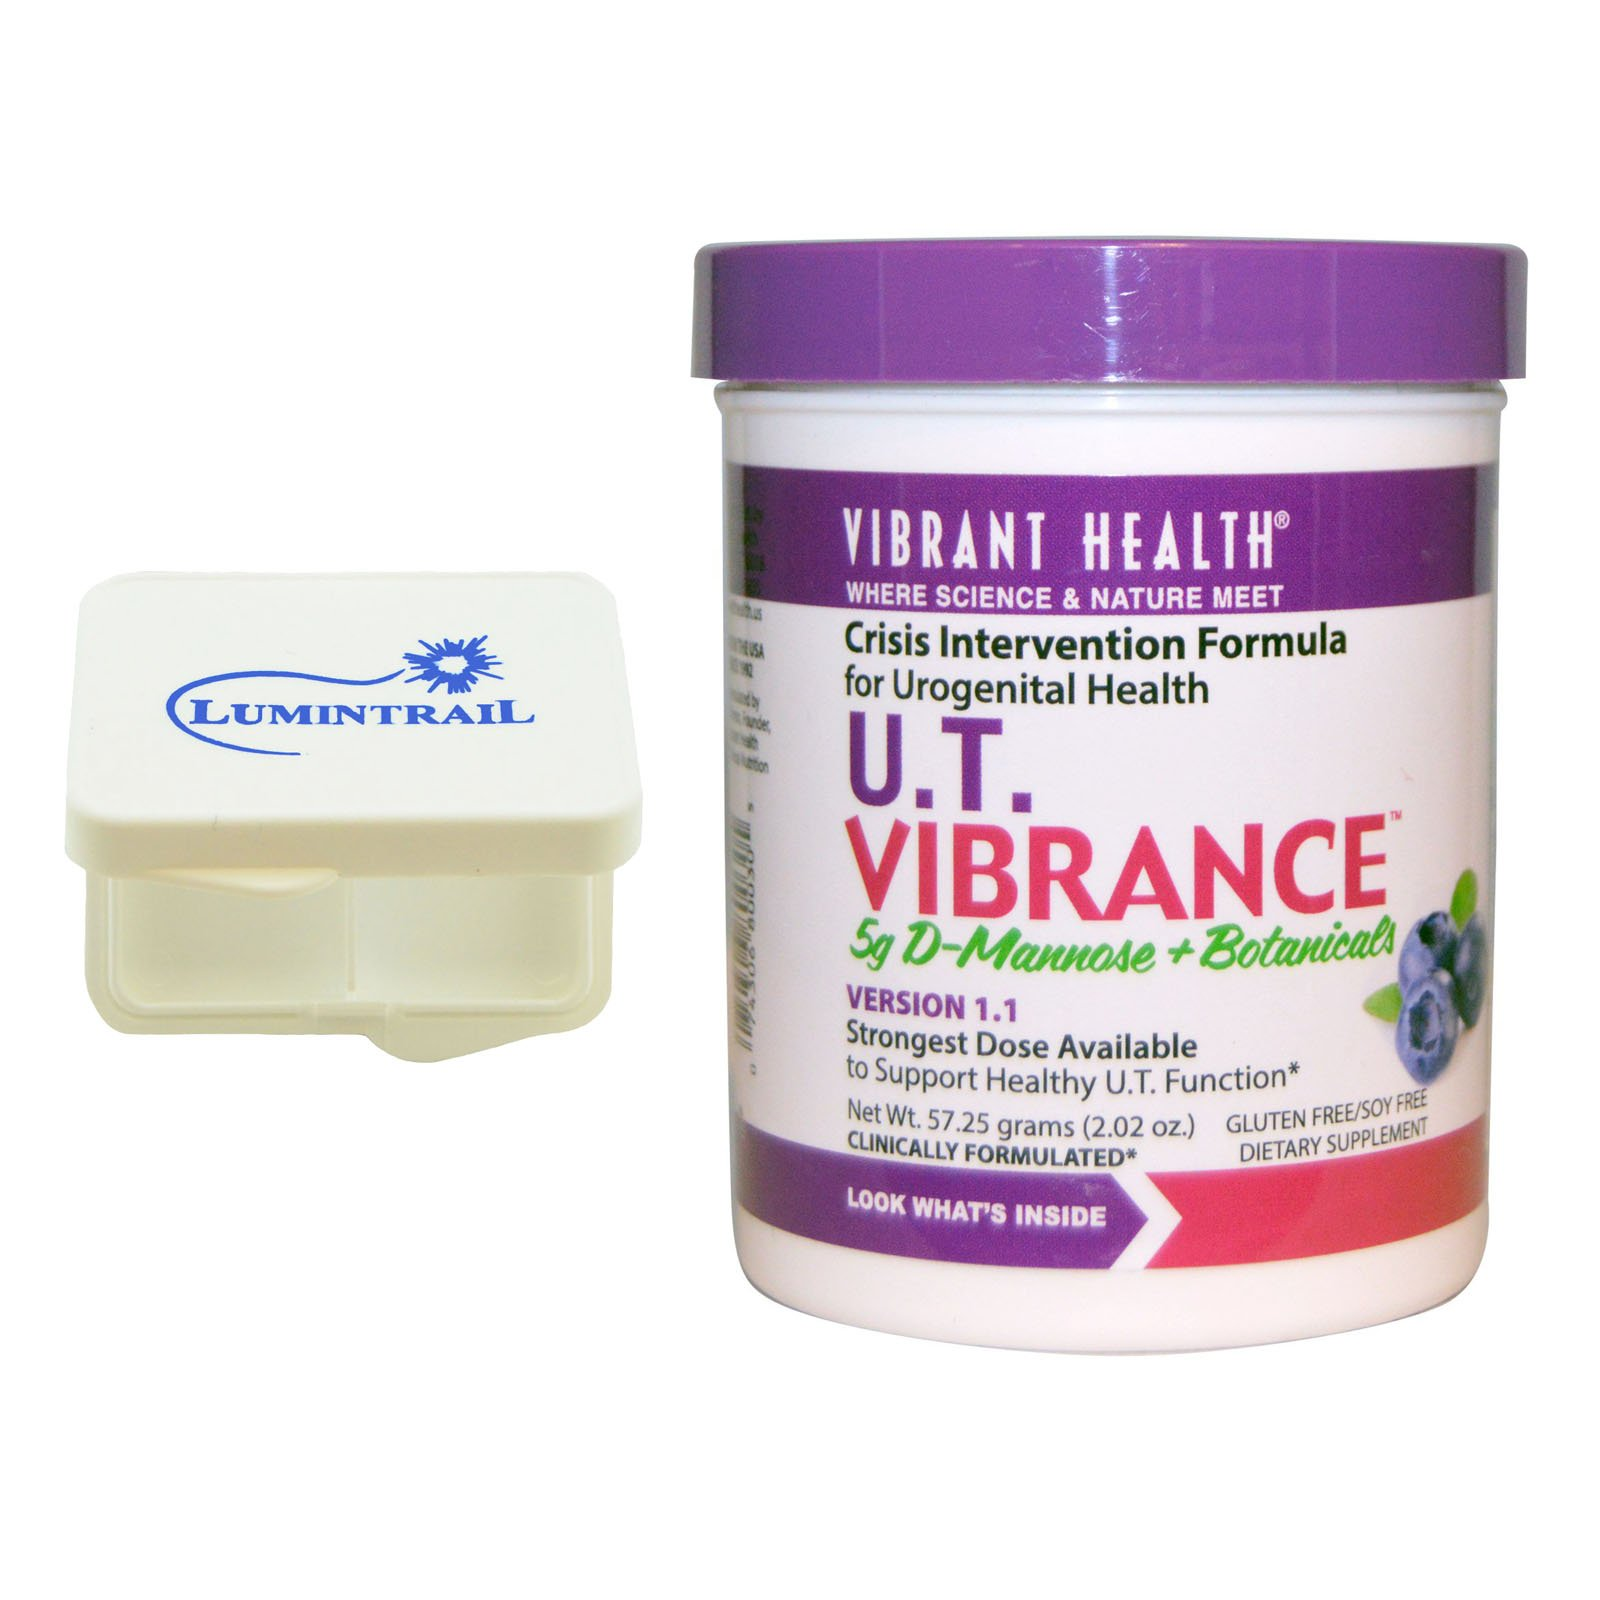 Vibrant Health - U.T. Vibrance : For Urinary Tract Health 10 Servings Bundle with Lumintrail Pill Case by Vibrant Health